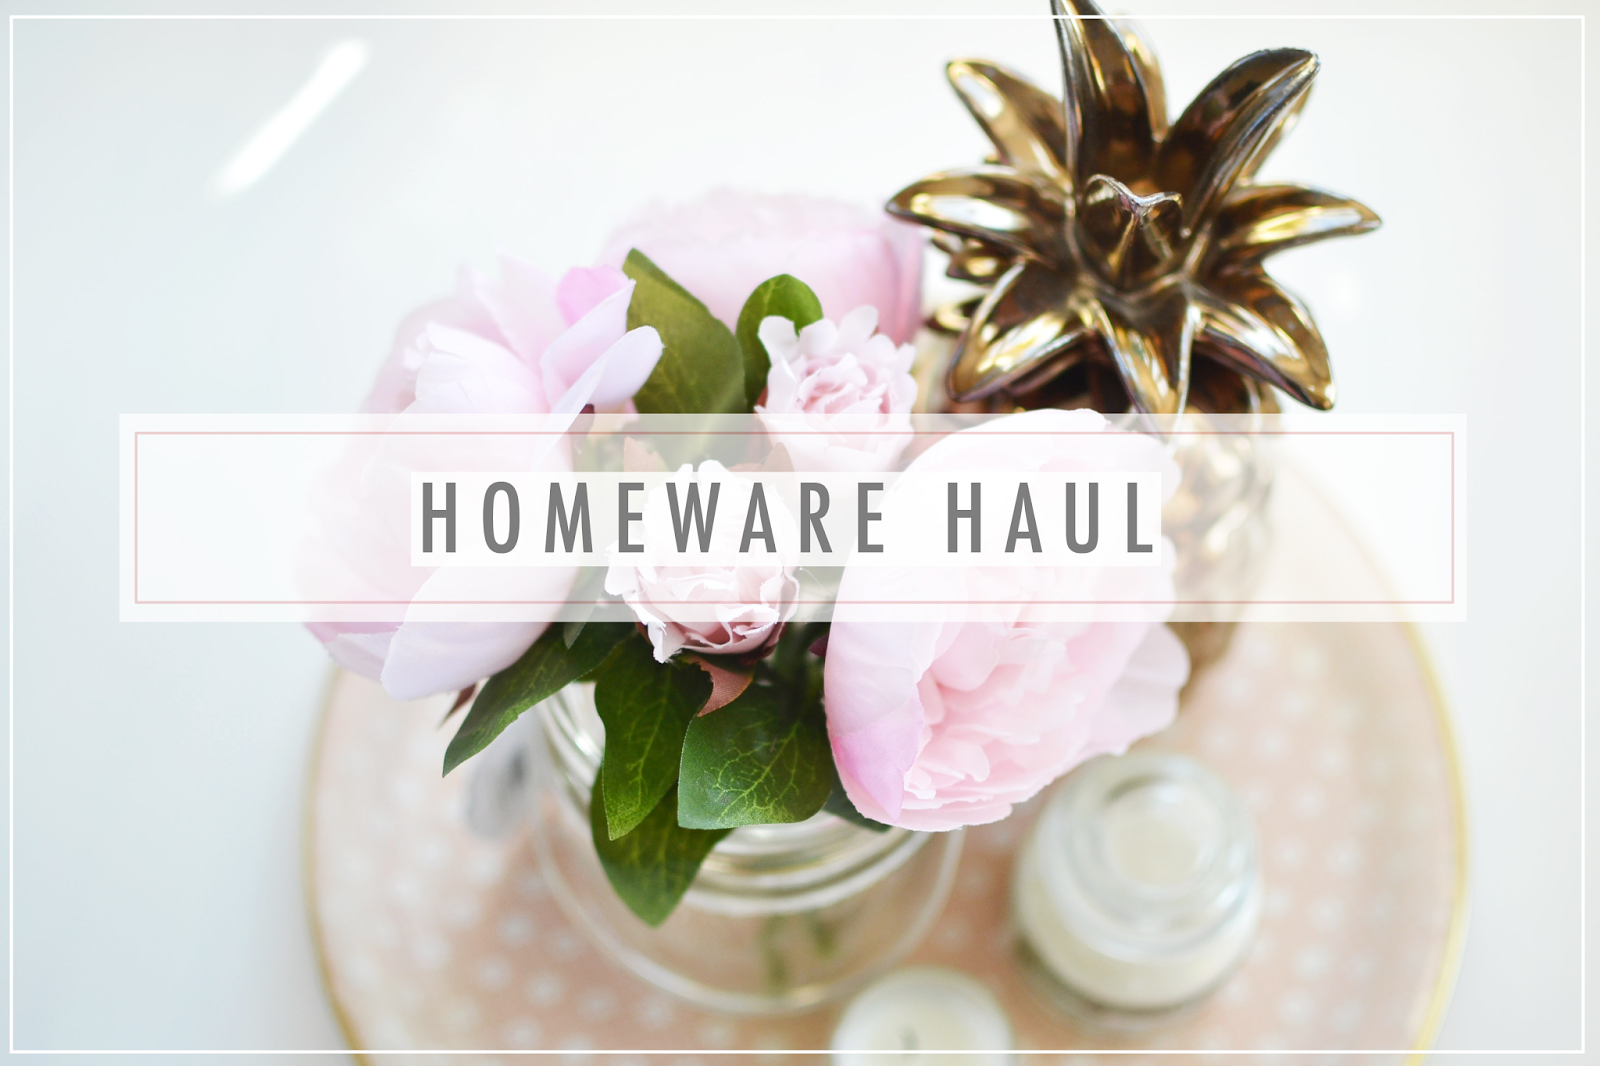 home ware haul, bhs home range, blogger haul